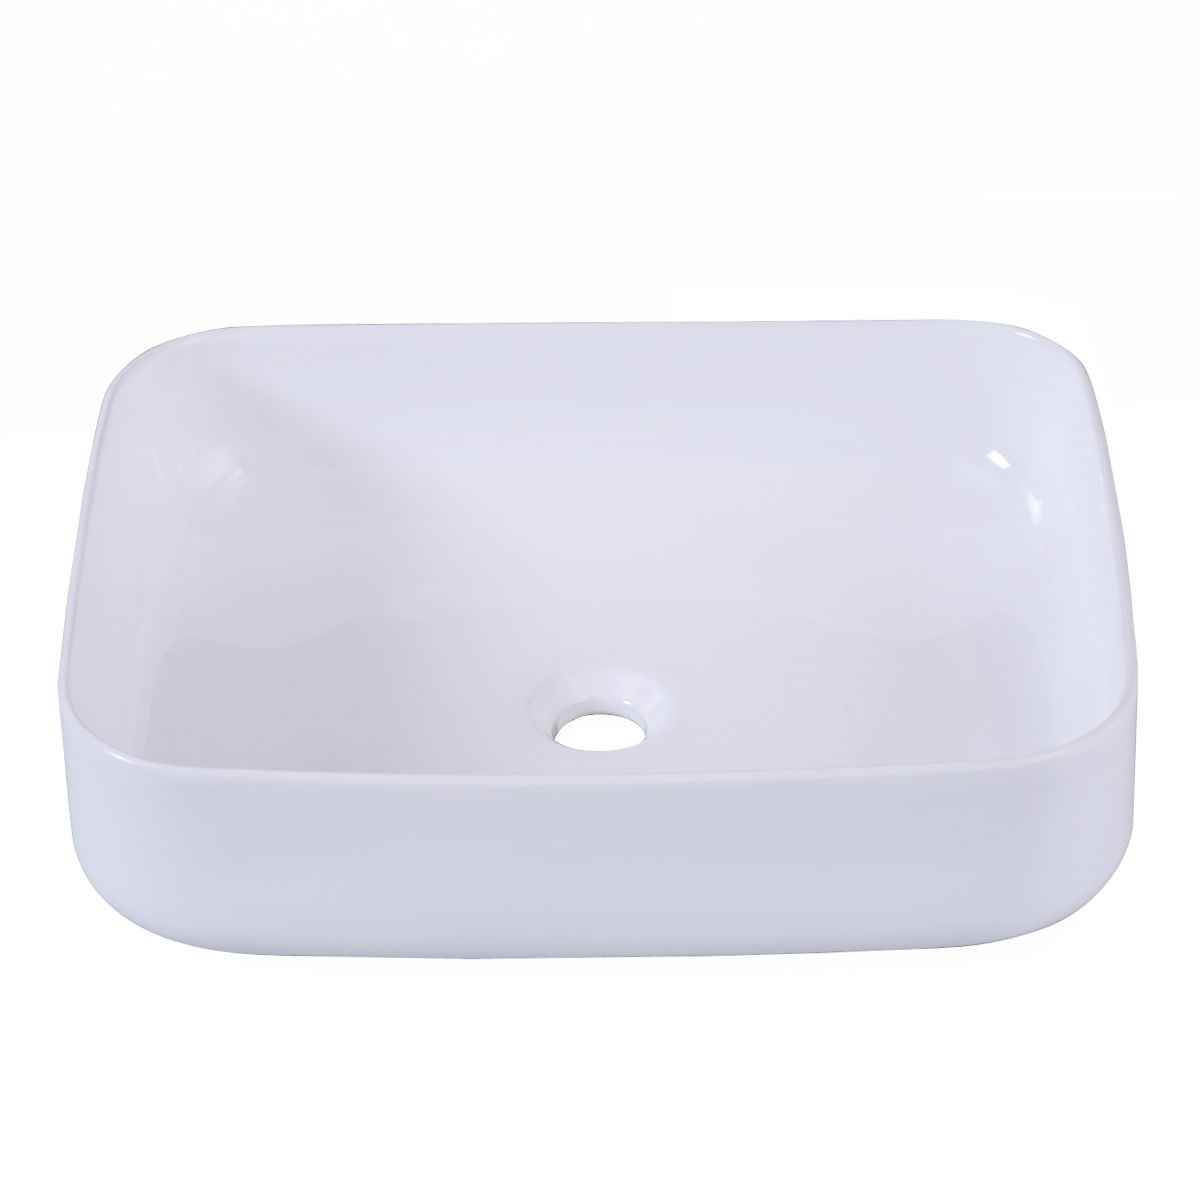 Modern Ceramic Rectangle White Vessel Sink Bathroom Vanity